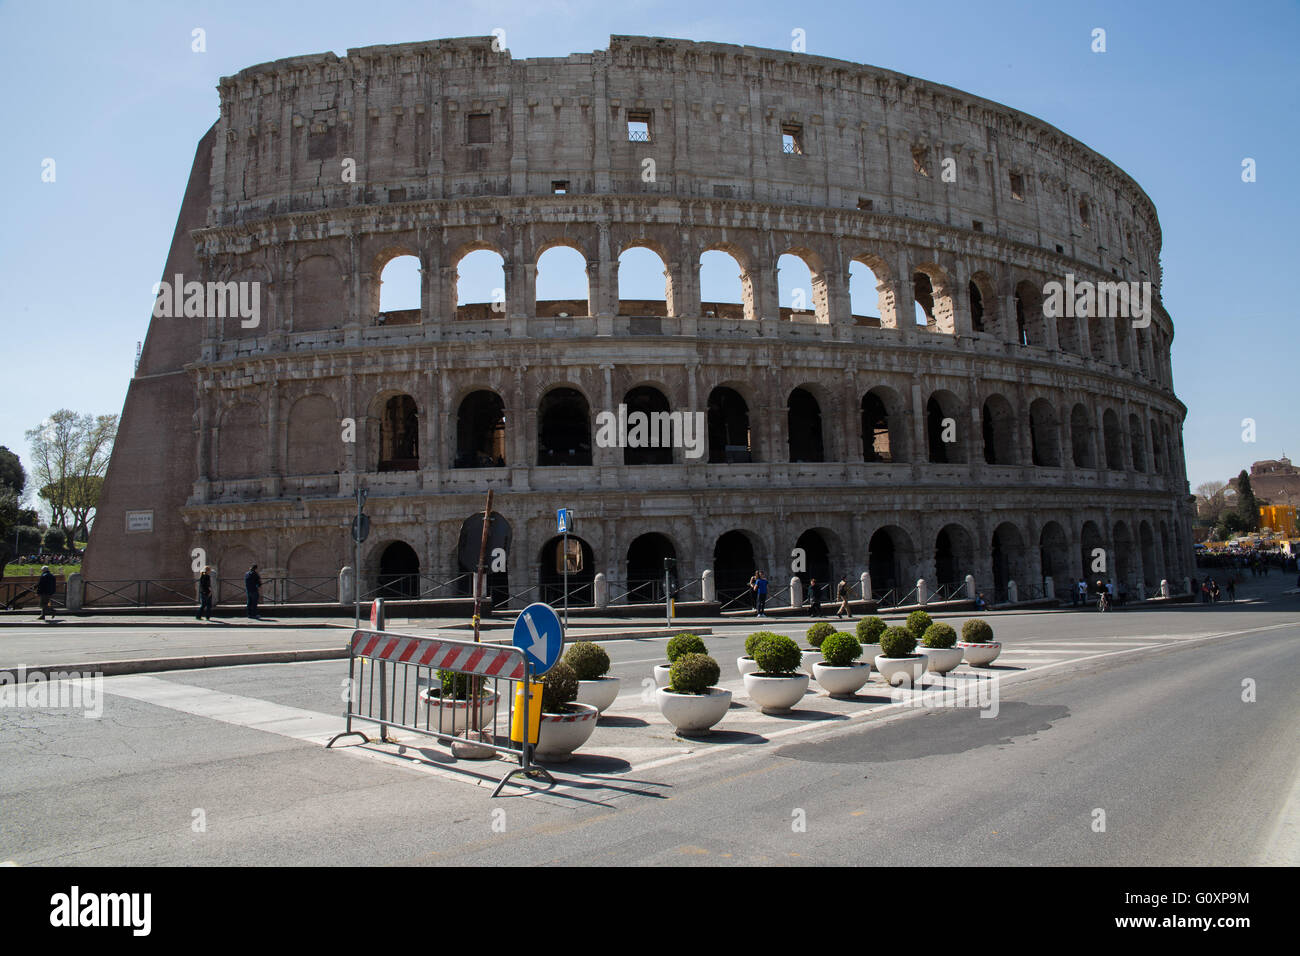 The Colosseum  known as the Flavian Amphitheatre is an oval amphitheatre in the centre of the city of Rome, Italy - Stock Image